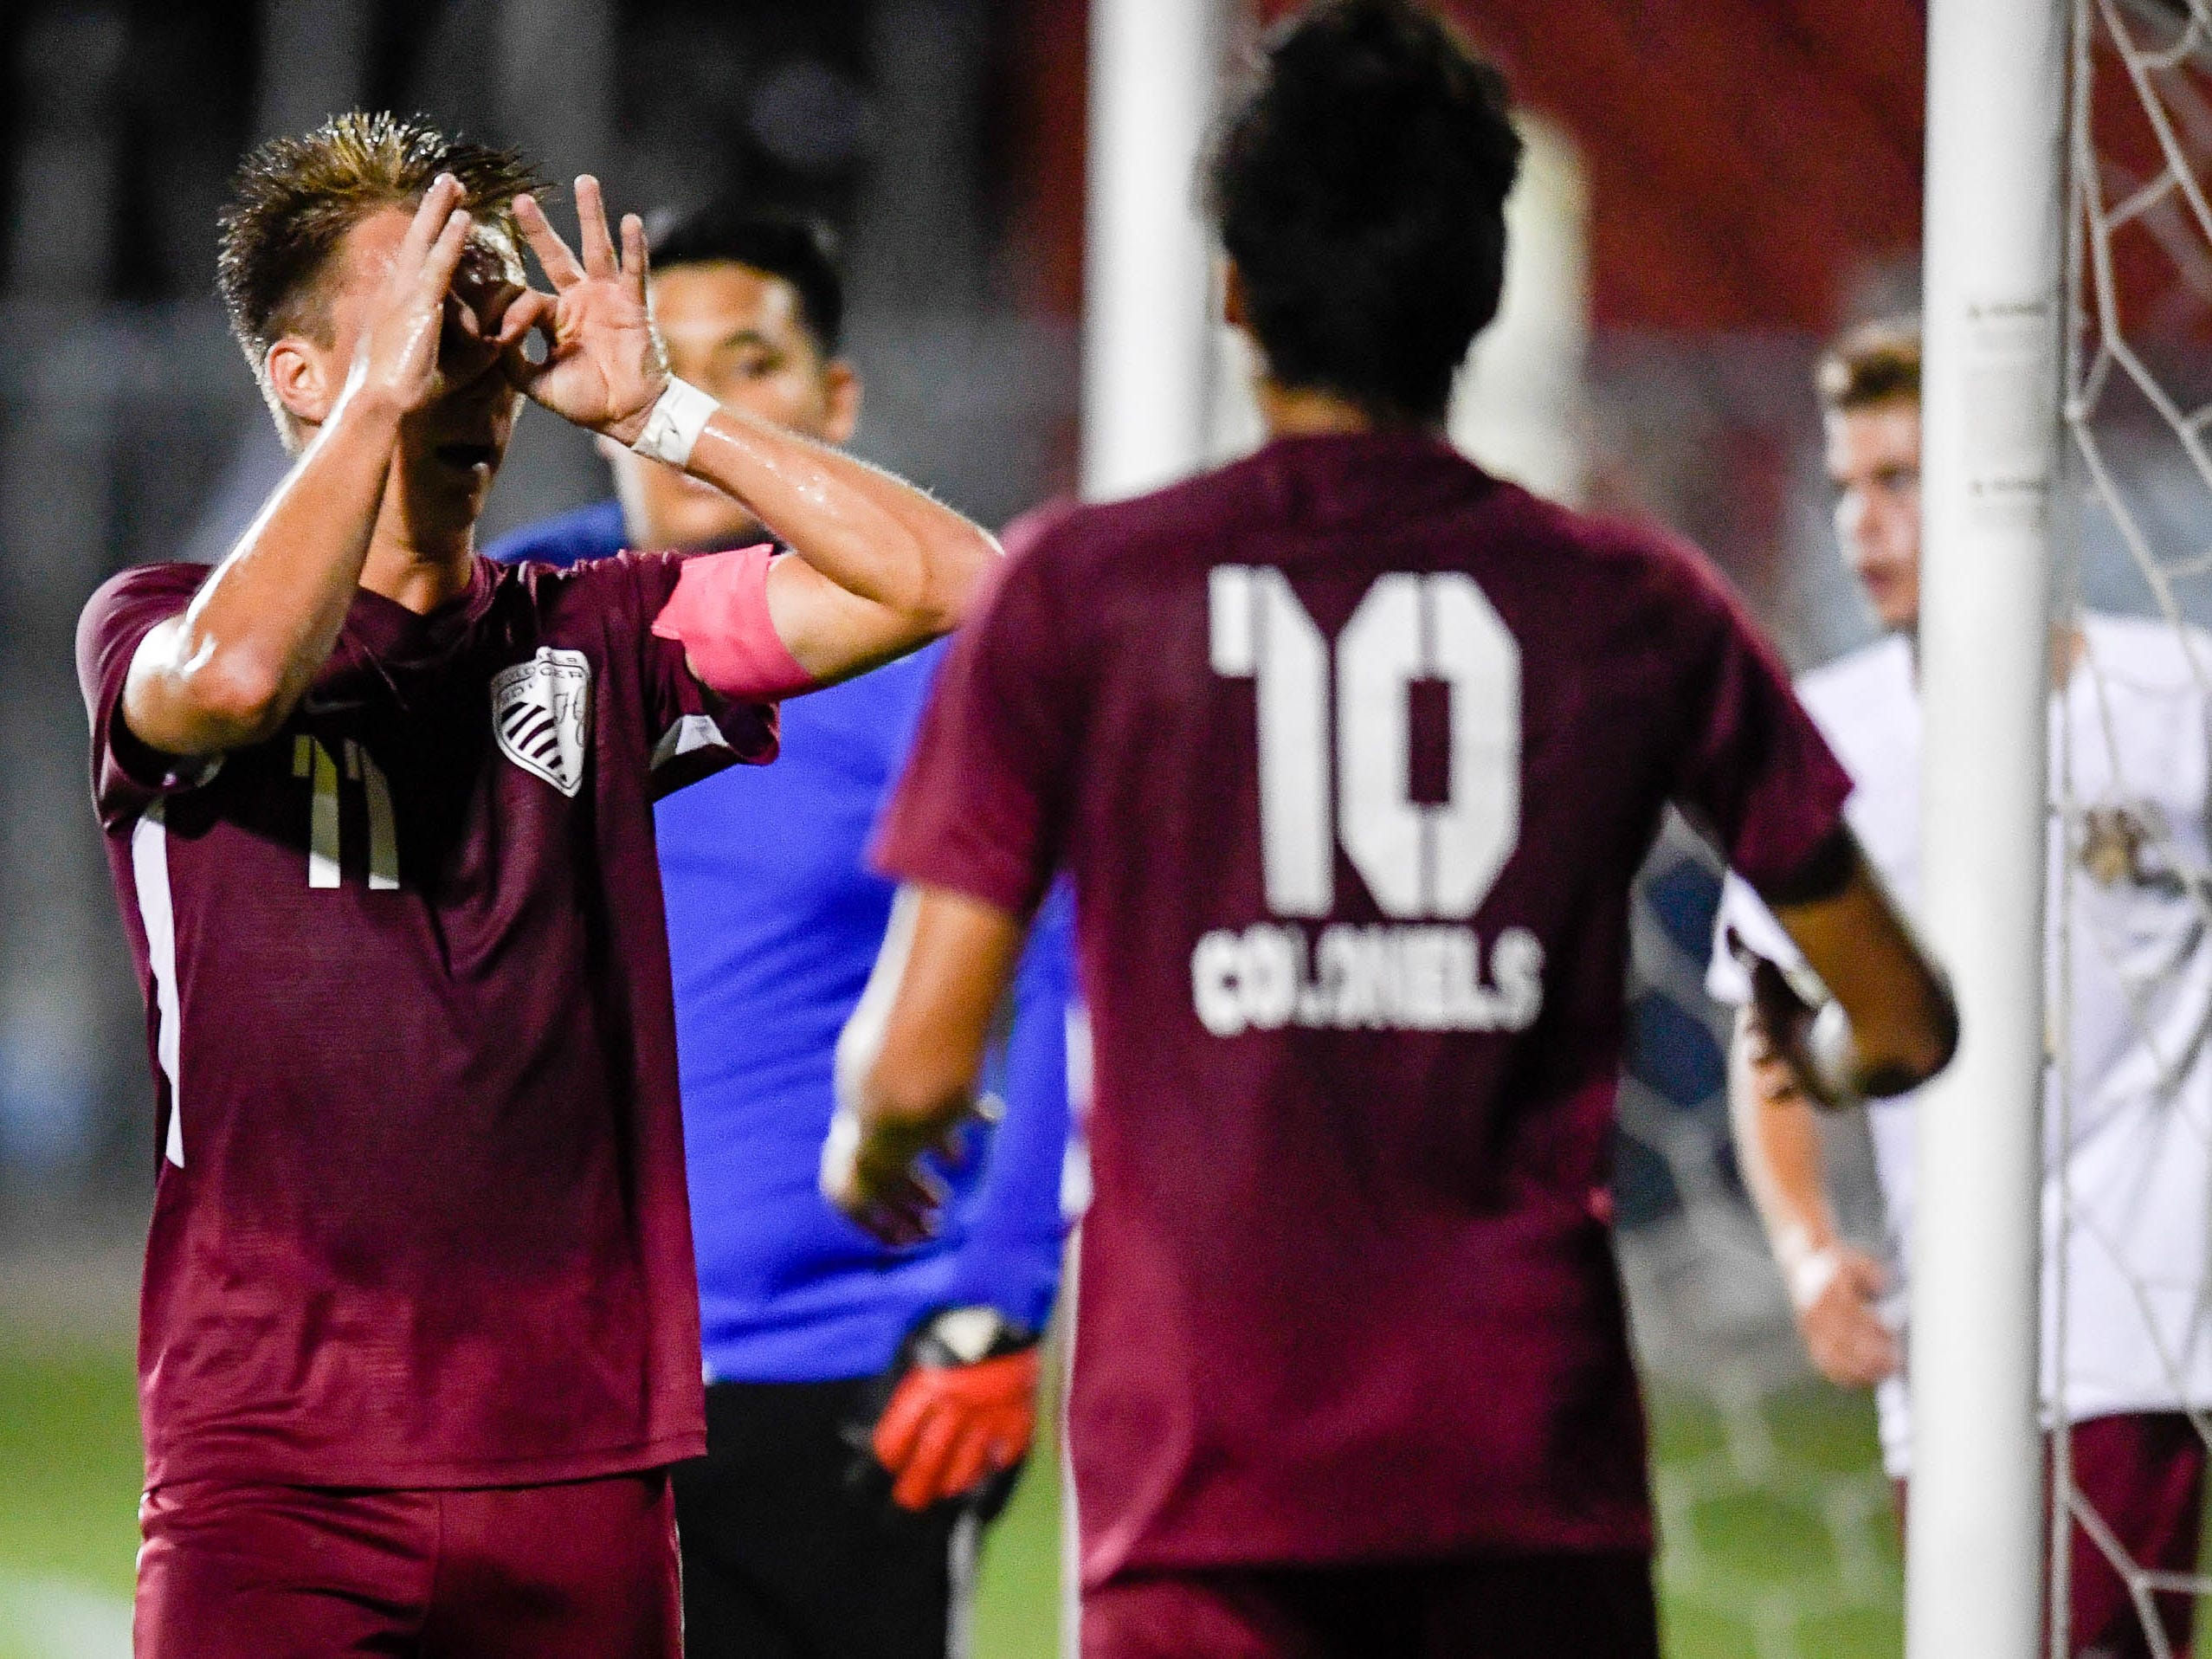 Henderson County's Max Wawrin (11) celebrates a goal as the Henderson County Colonels play the Webster County Trojans in the Sixth District Soccer Tournament at Colonel Field Wednesday, October 10, 2018.